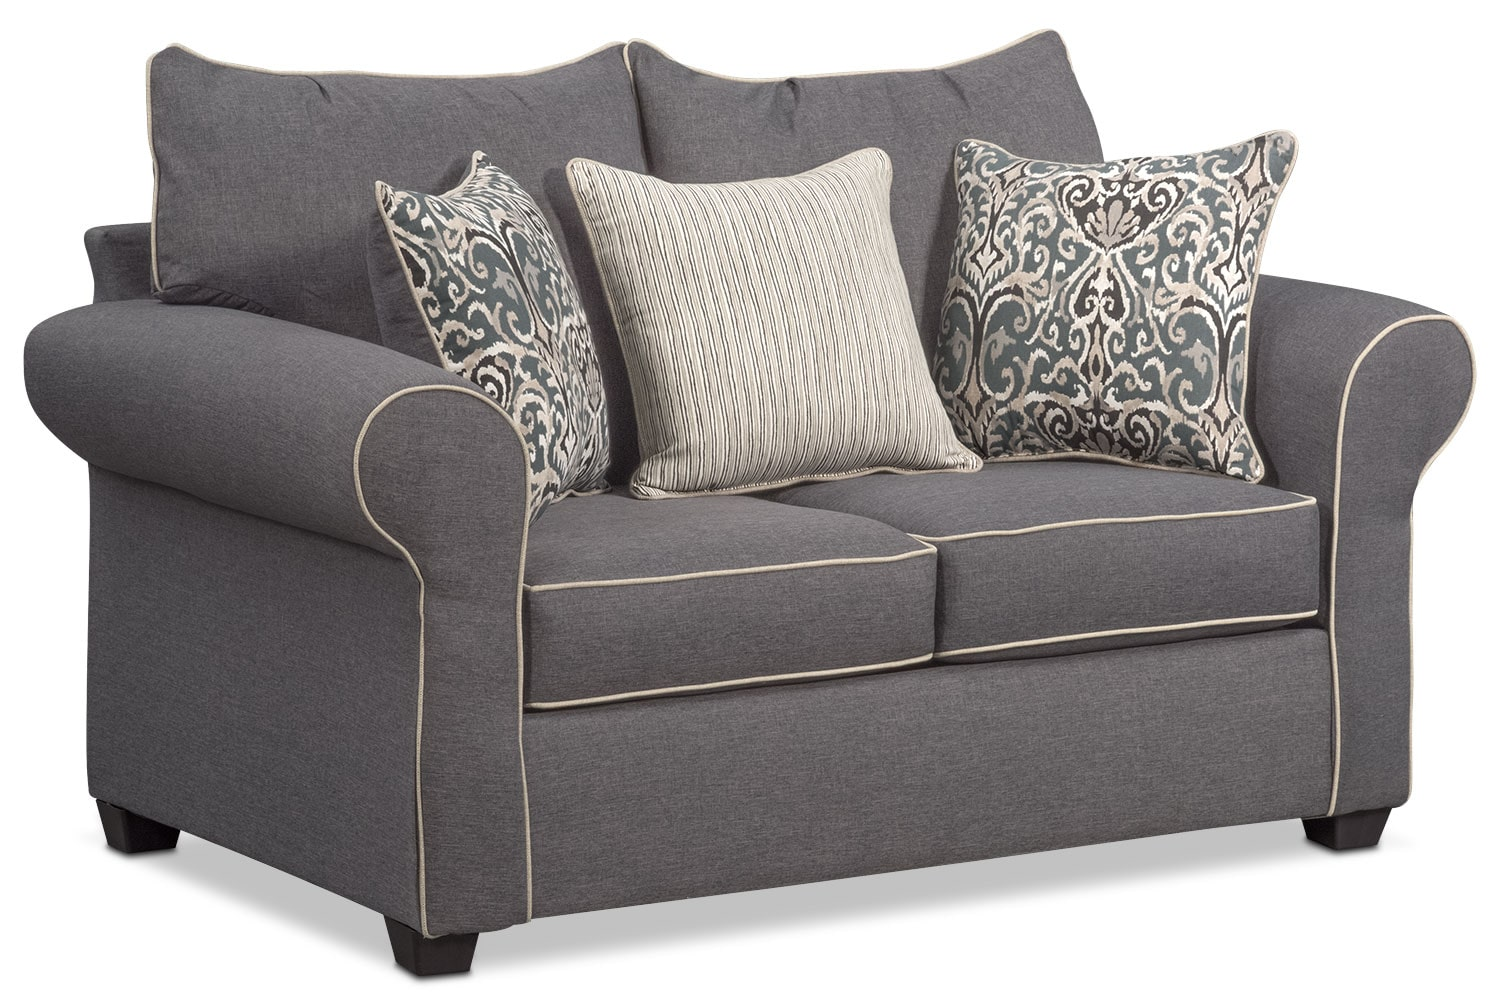 Carla Queen Memory Foam Sleeper Sofa And Loveseat Set Gray  ~ Sleeper Sofa Memory Foam